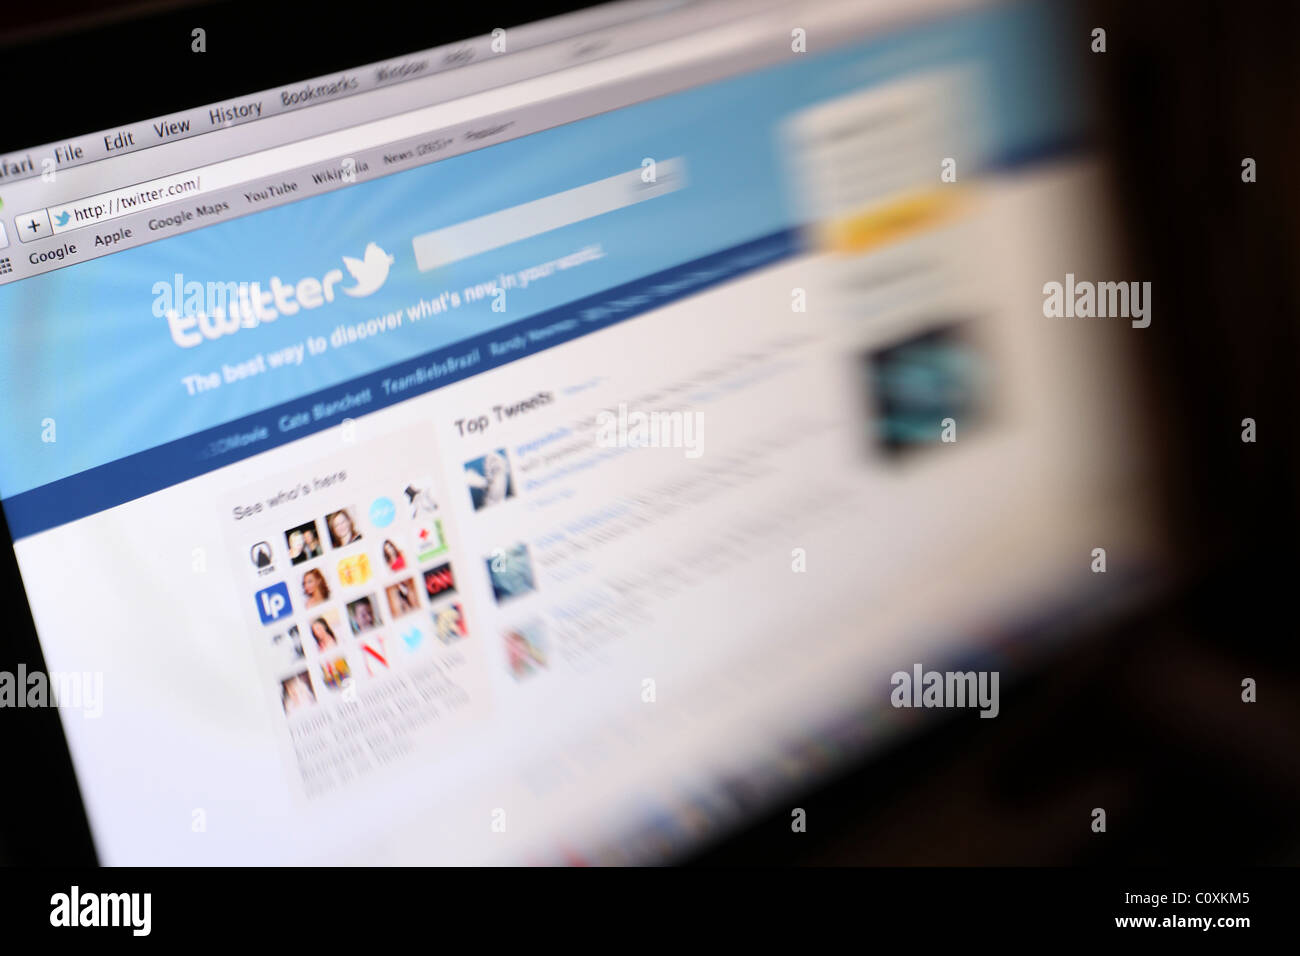 A screen shot showing the website Twitter - Stock Image